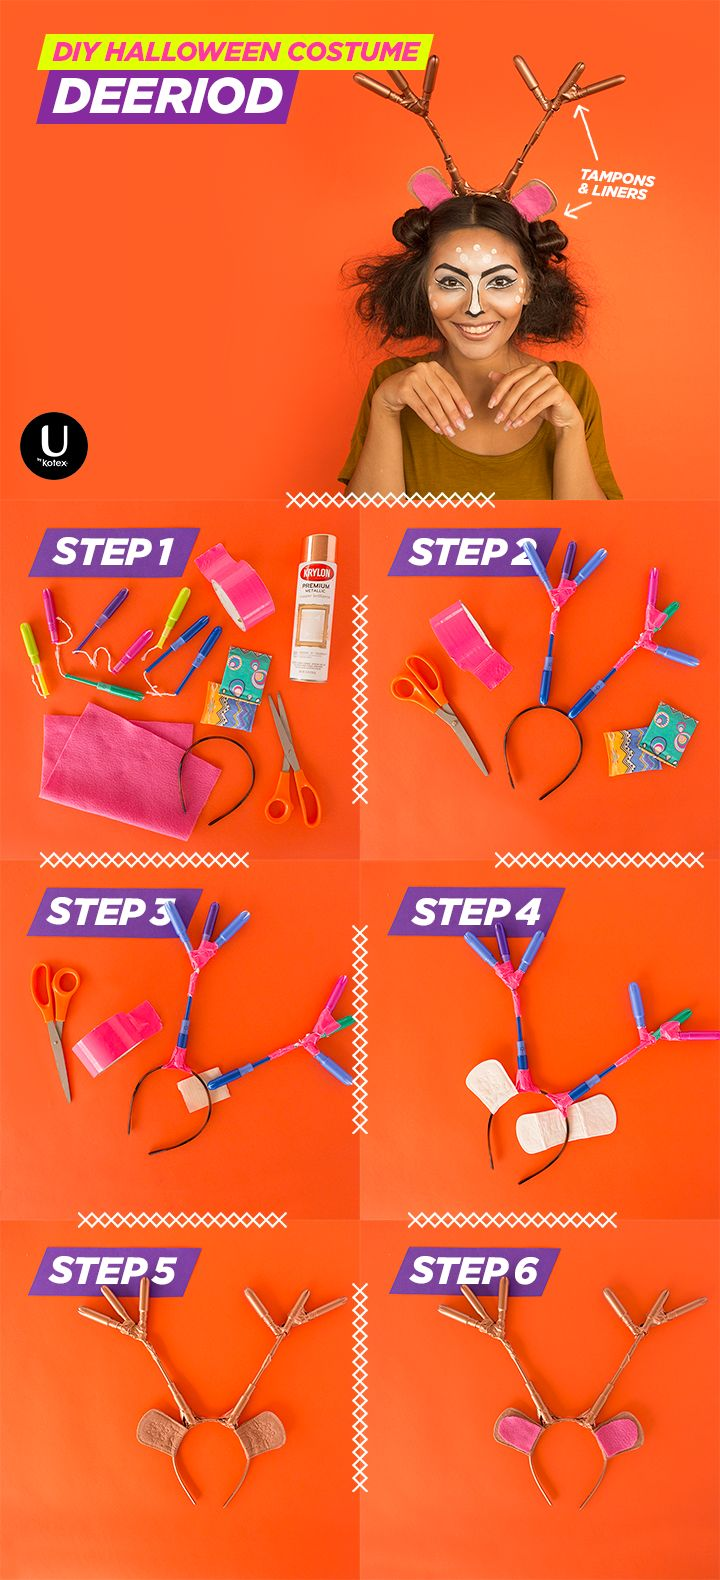 Doe-Em-Gee. Antlers made out of U by Kotex Click® and Sleek® tampons?! This DIY deer Halloween costume is as awesome as it is cray.   1.Gather Supplies 2.Duct tape the tampon applicators together into 2 antlers.  3.Tape antlers to the headband. 4.Attach liners to headband by removing backing and folding over. 5.Spray paint the whole thing bronze. 6.Add some pink felt for the ears.  Peep our other pin for the Halloween make-up tutorial! And click the image for a free tampon sample.